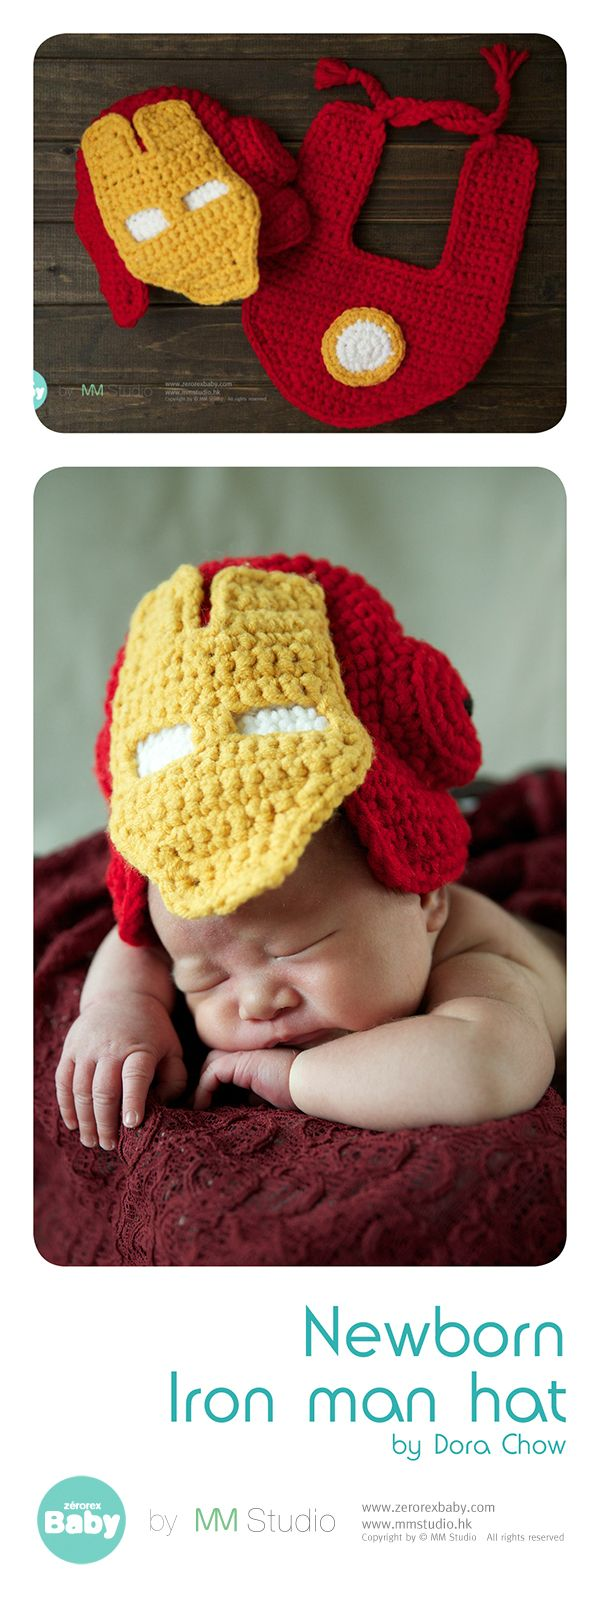 Crochet Iron man newborn hat